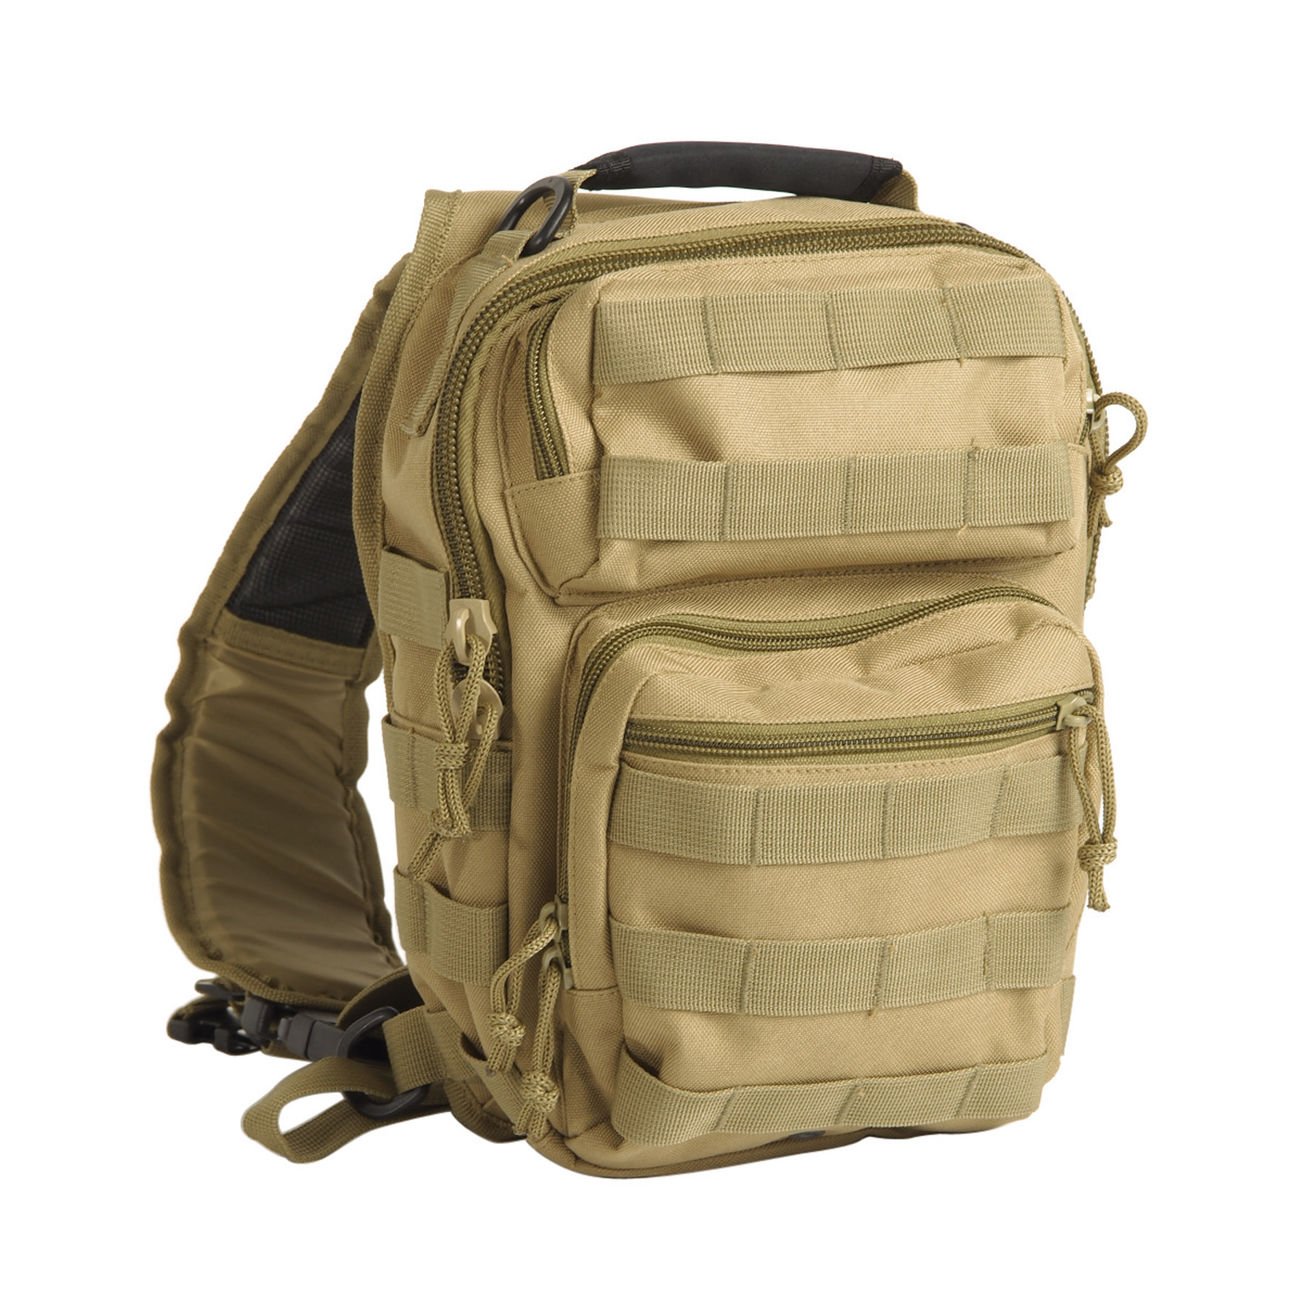 Mil-Tec Rucksack One Strap Assault Pack small 8L coyote 0